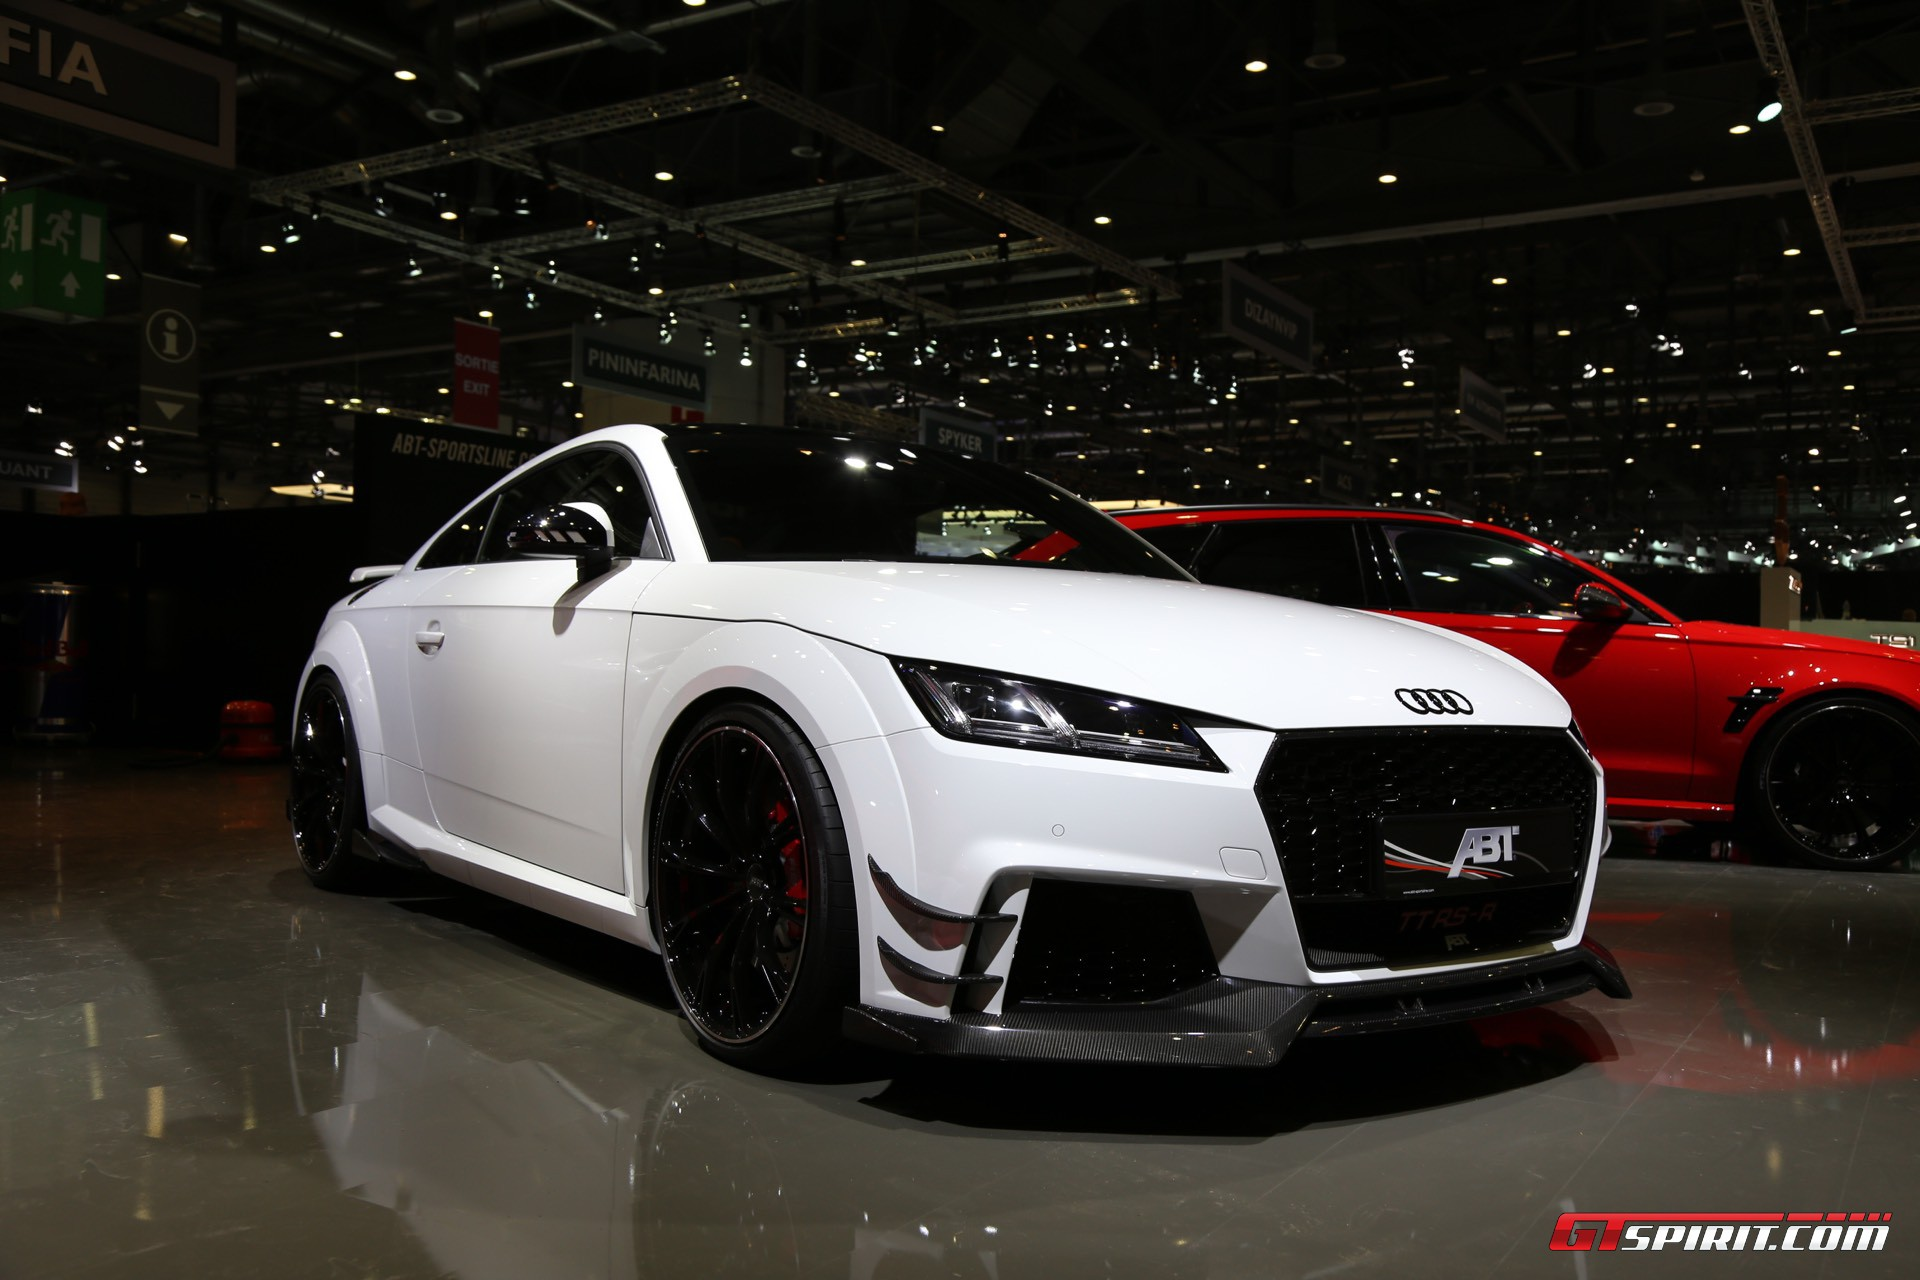 Geneva Motor Show: All-new Audi RS 5 Coupe revealed